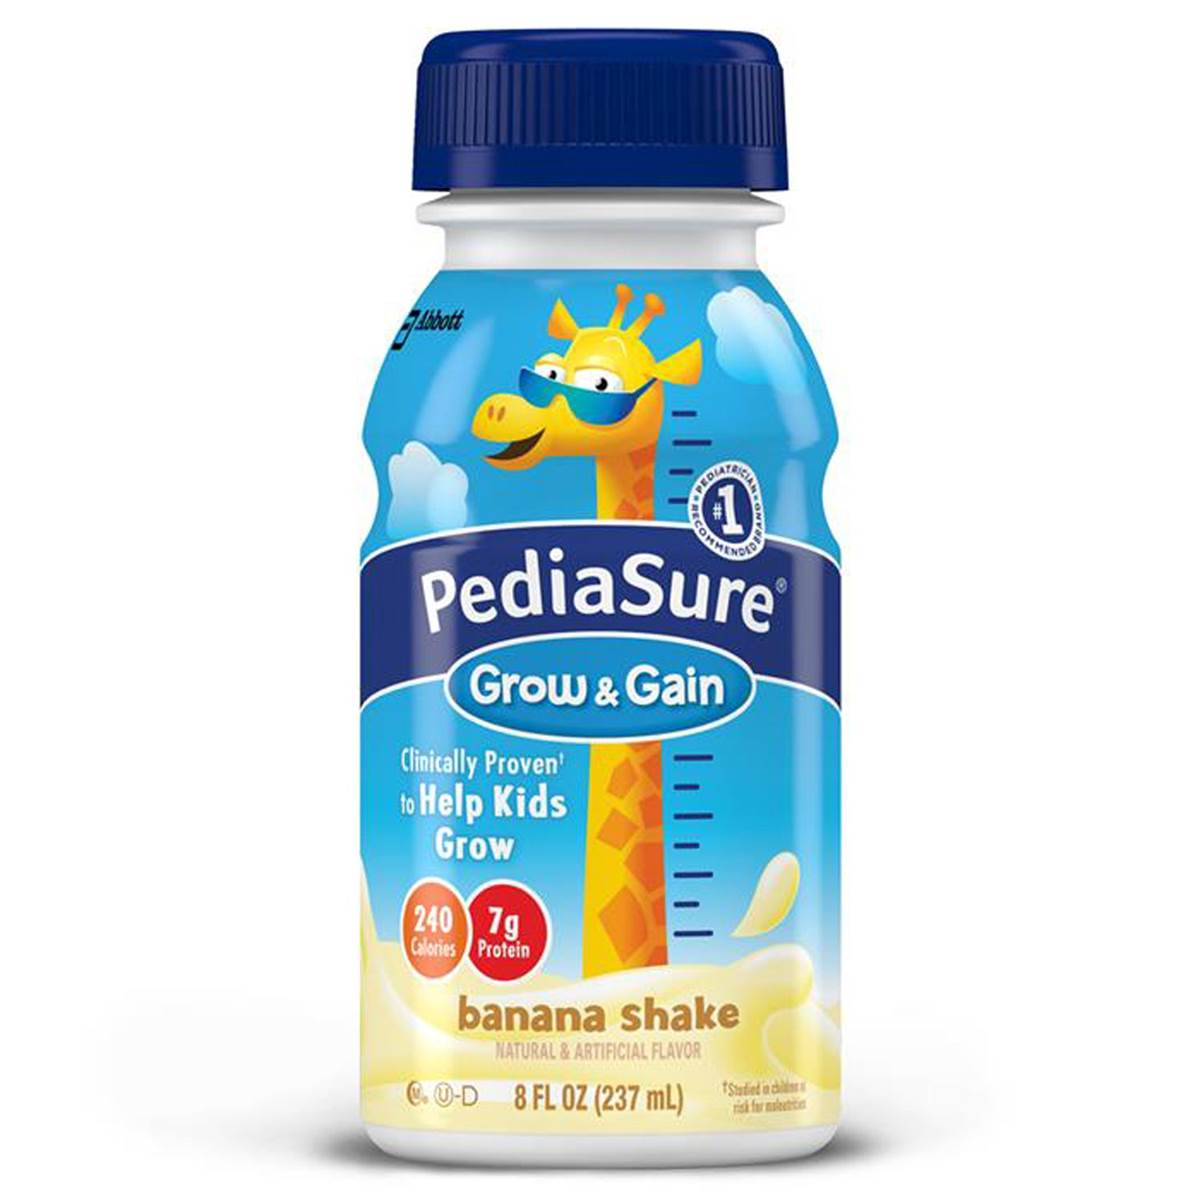 Pediasure Grow & Gain 237ml (8oz) - Banana Shake